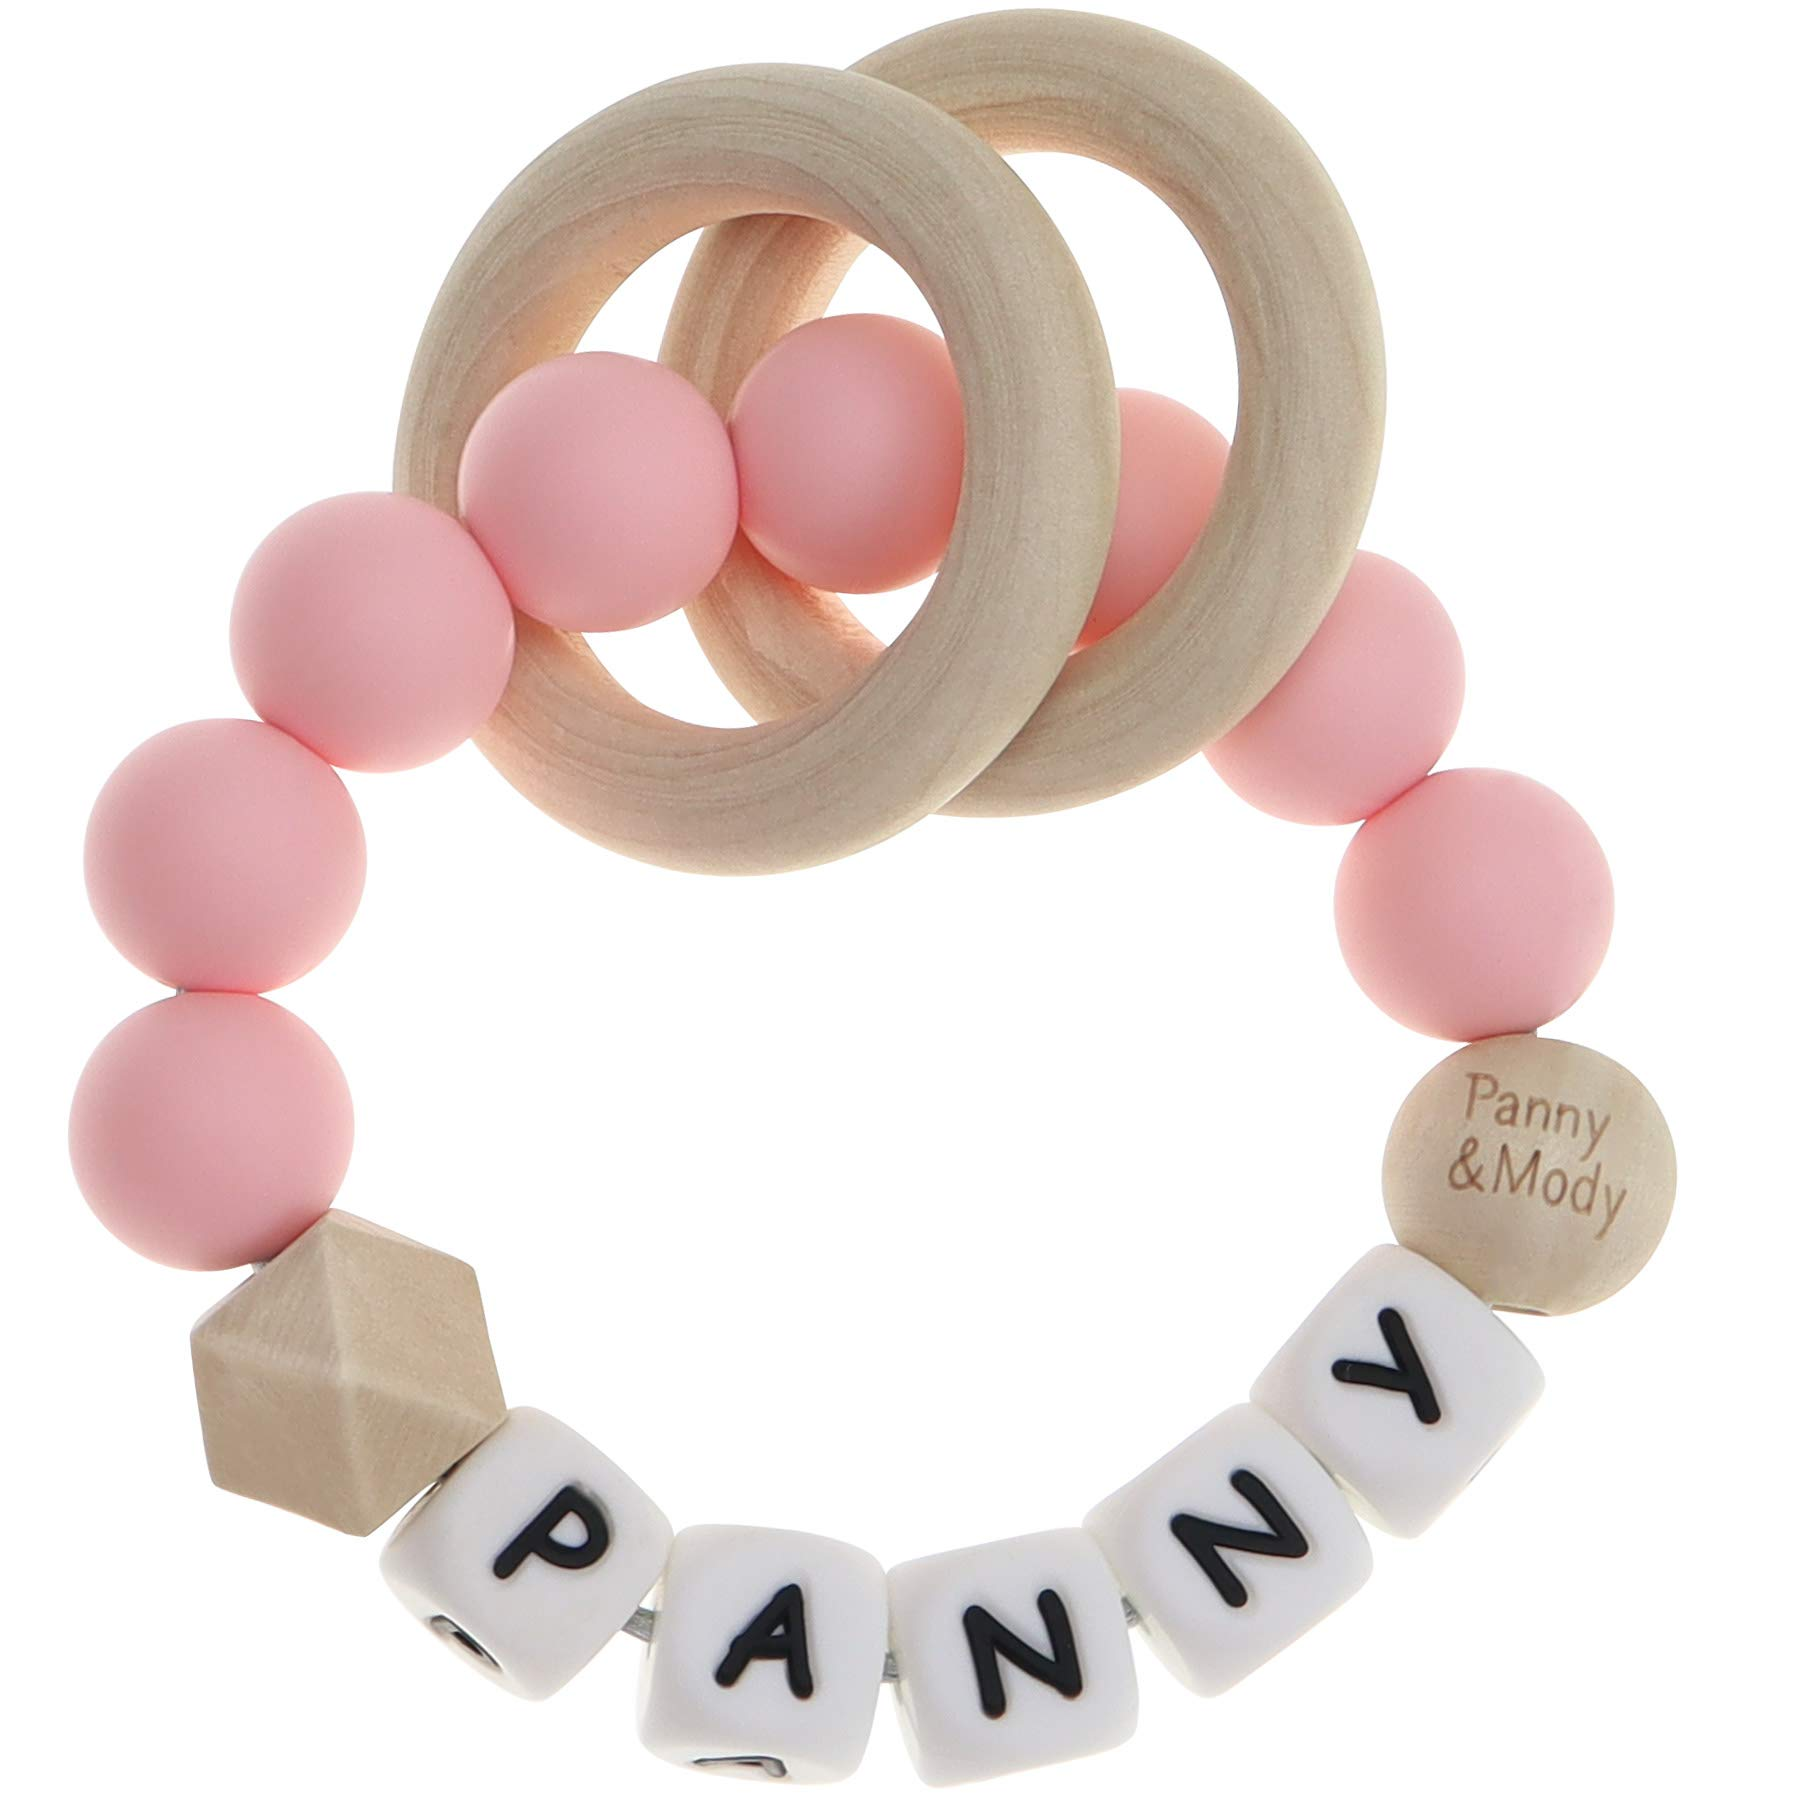 Baby Keepsake Rattles Teether Personalized Name for Girls Baby Shower - Silicone Sensory Teething Bracelet with Chewable Beads for Babies, Infants Toddler, Kids(Pink)